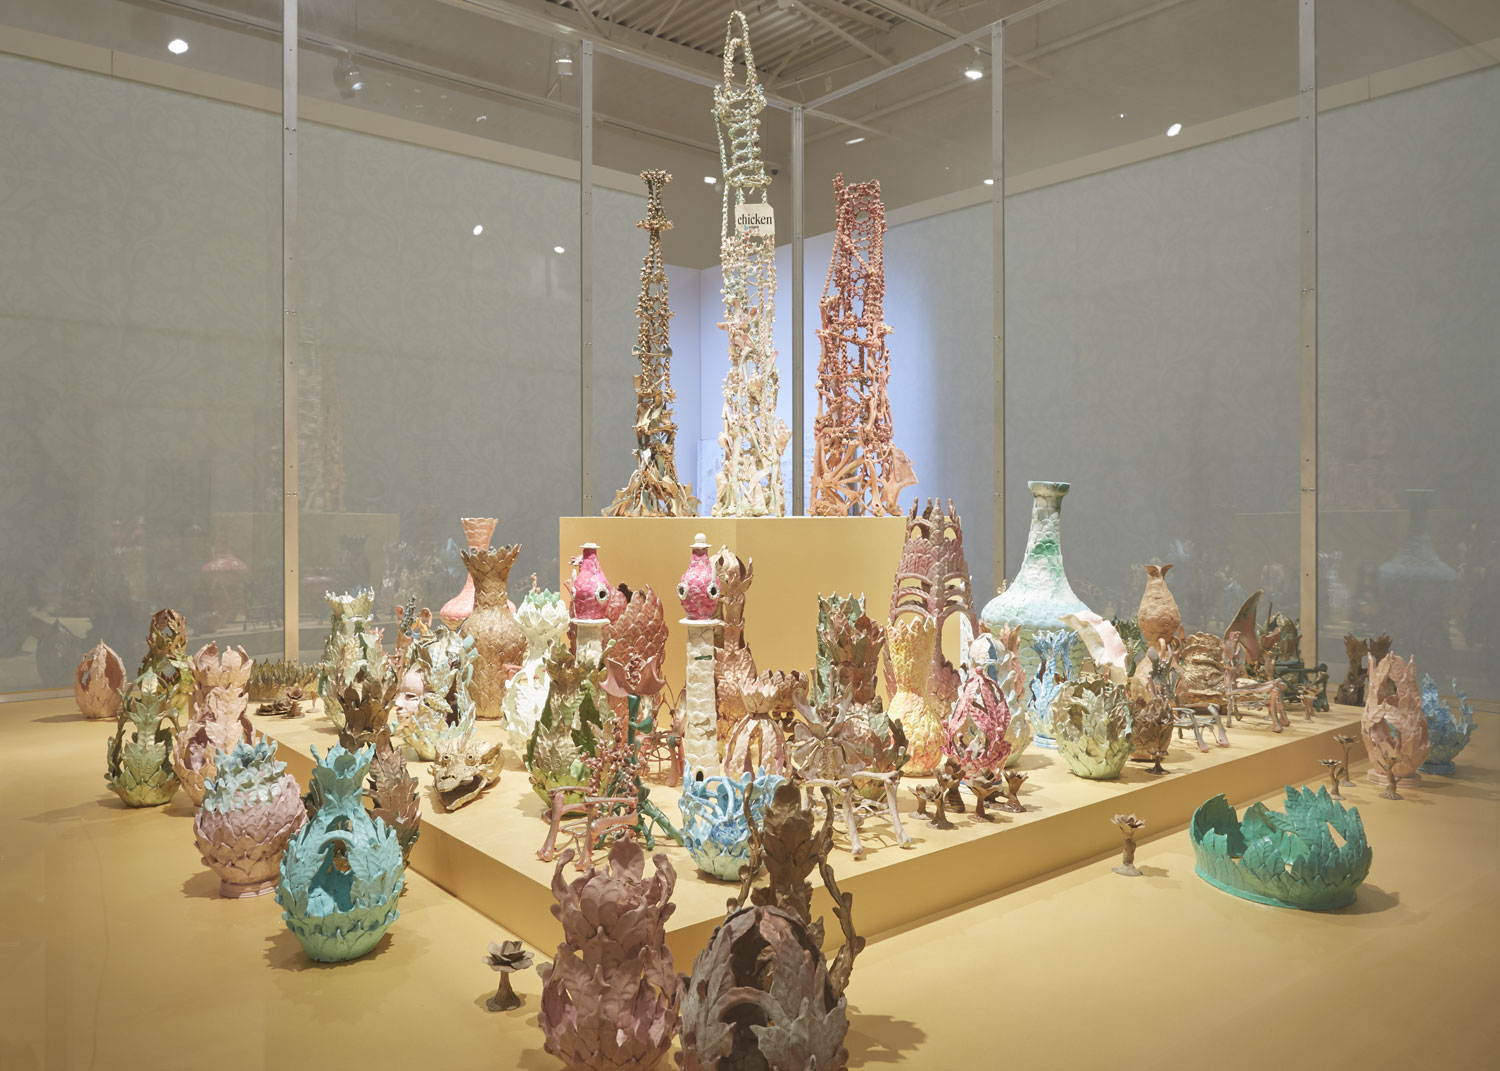 Artist-built environments: Chicken-bone towers, miniature thrones and ceramic vessels from the home of artist Eugene Von Bruenchenhein. Photo by Rich Maciejewski, courtesy of John Michael Kohler Arts Center